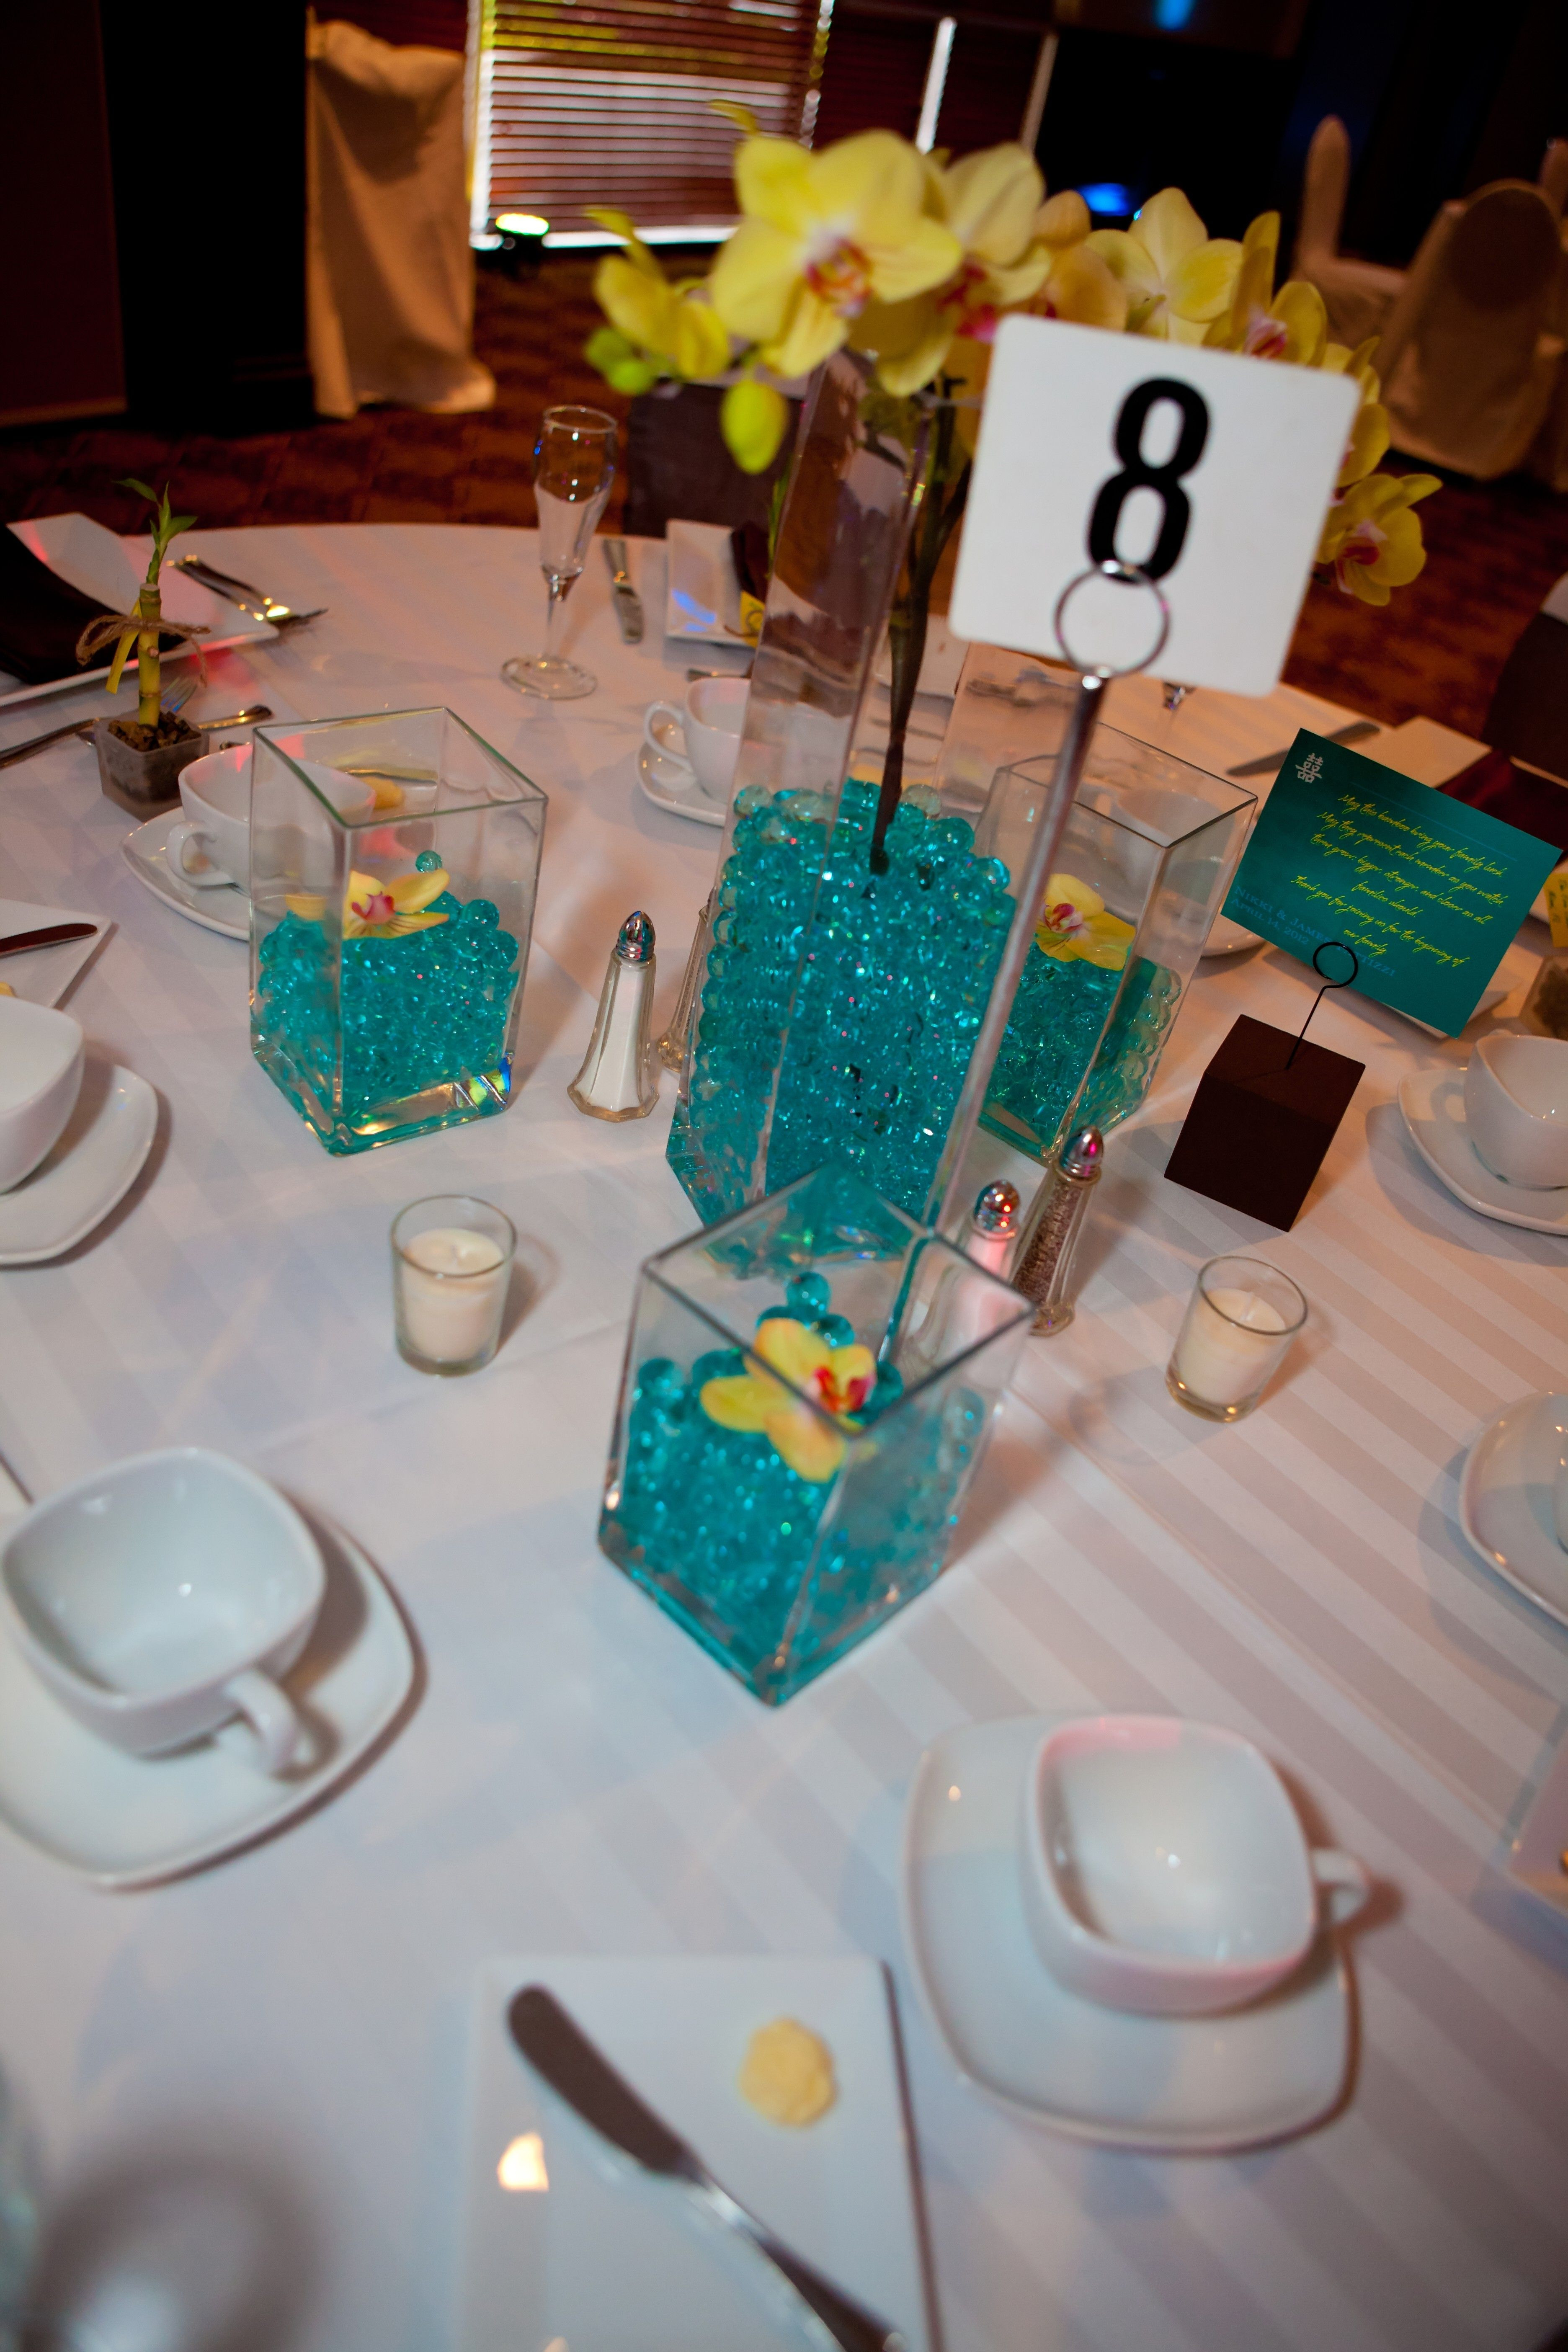 7 inch vase centerpiece of wedding centerpieces square vases teal water beads yellow for centerpieces square vases teal water beads yellow orchids candles